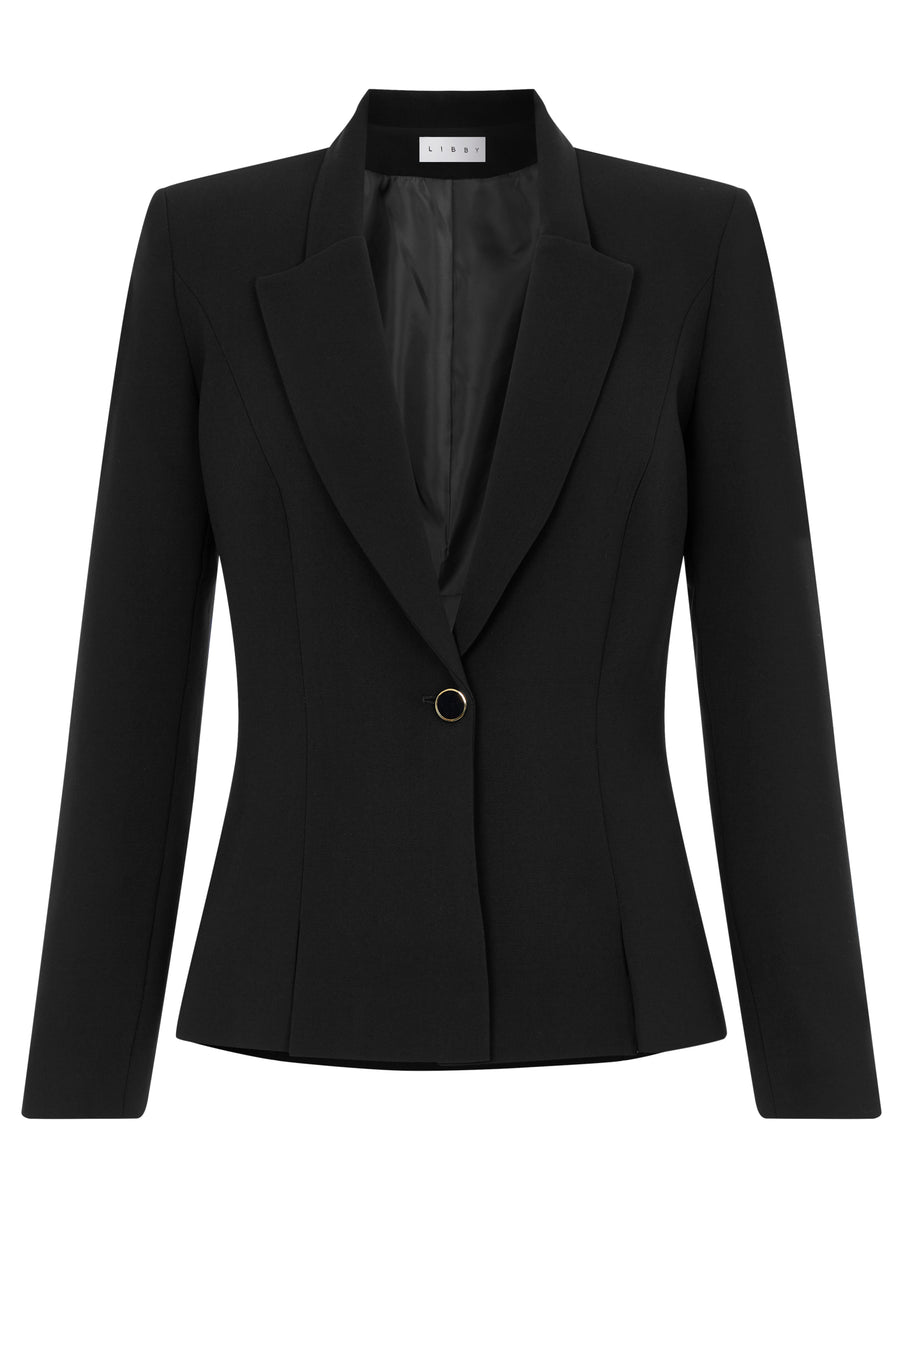 Buckingham Black Suiting Jacket